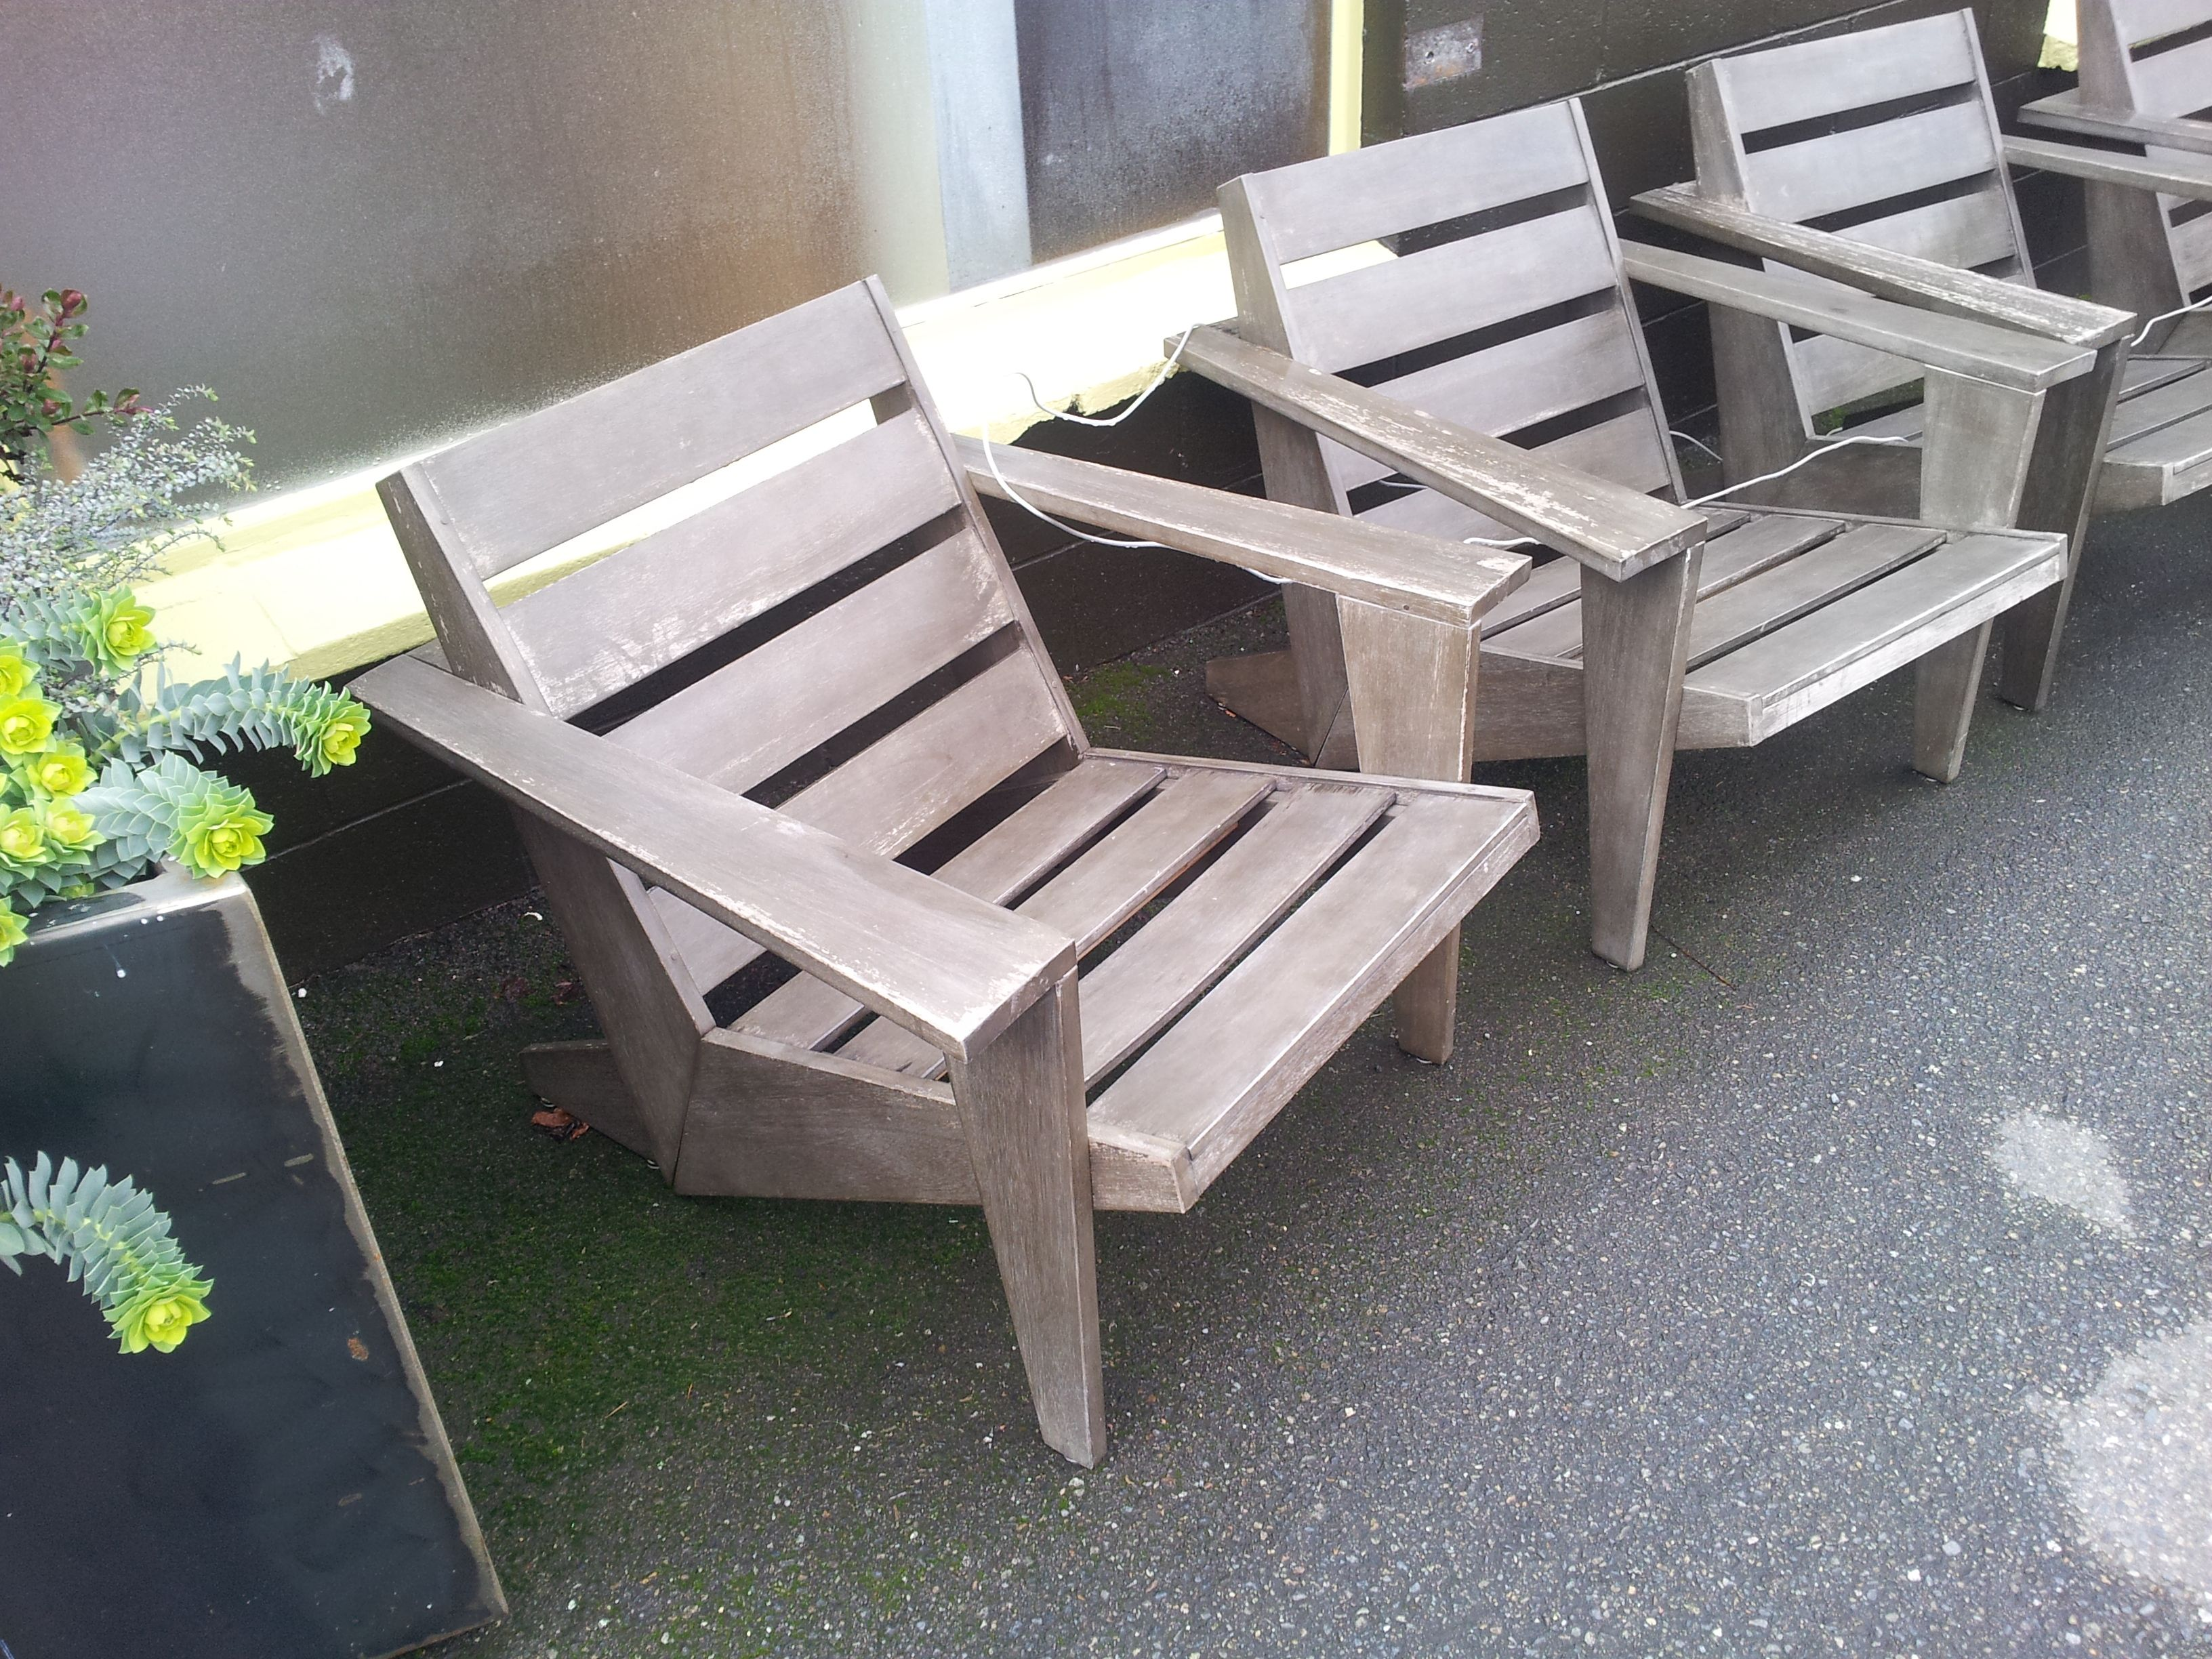 Cool Modern Adirondack Chairs From Outside A Coffe Shop In Edmonds Wa Gard